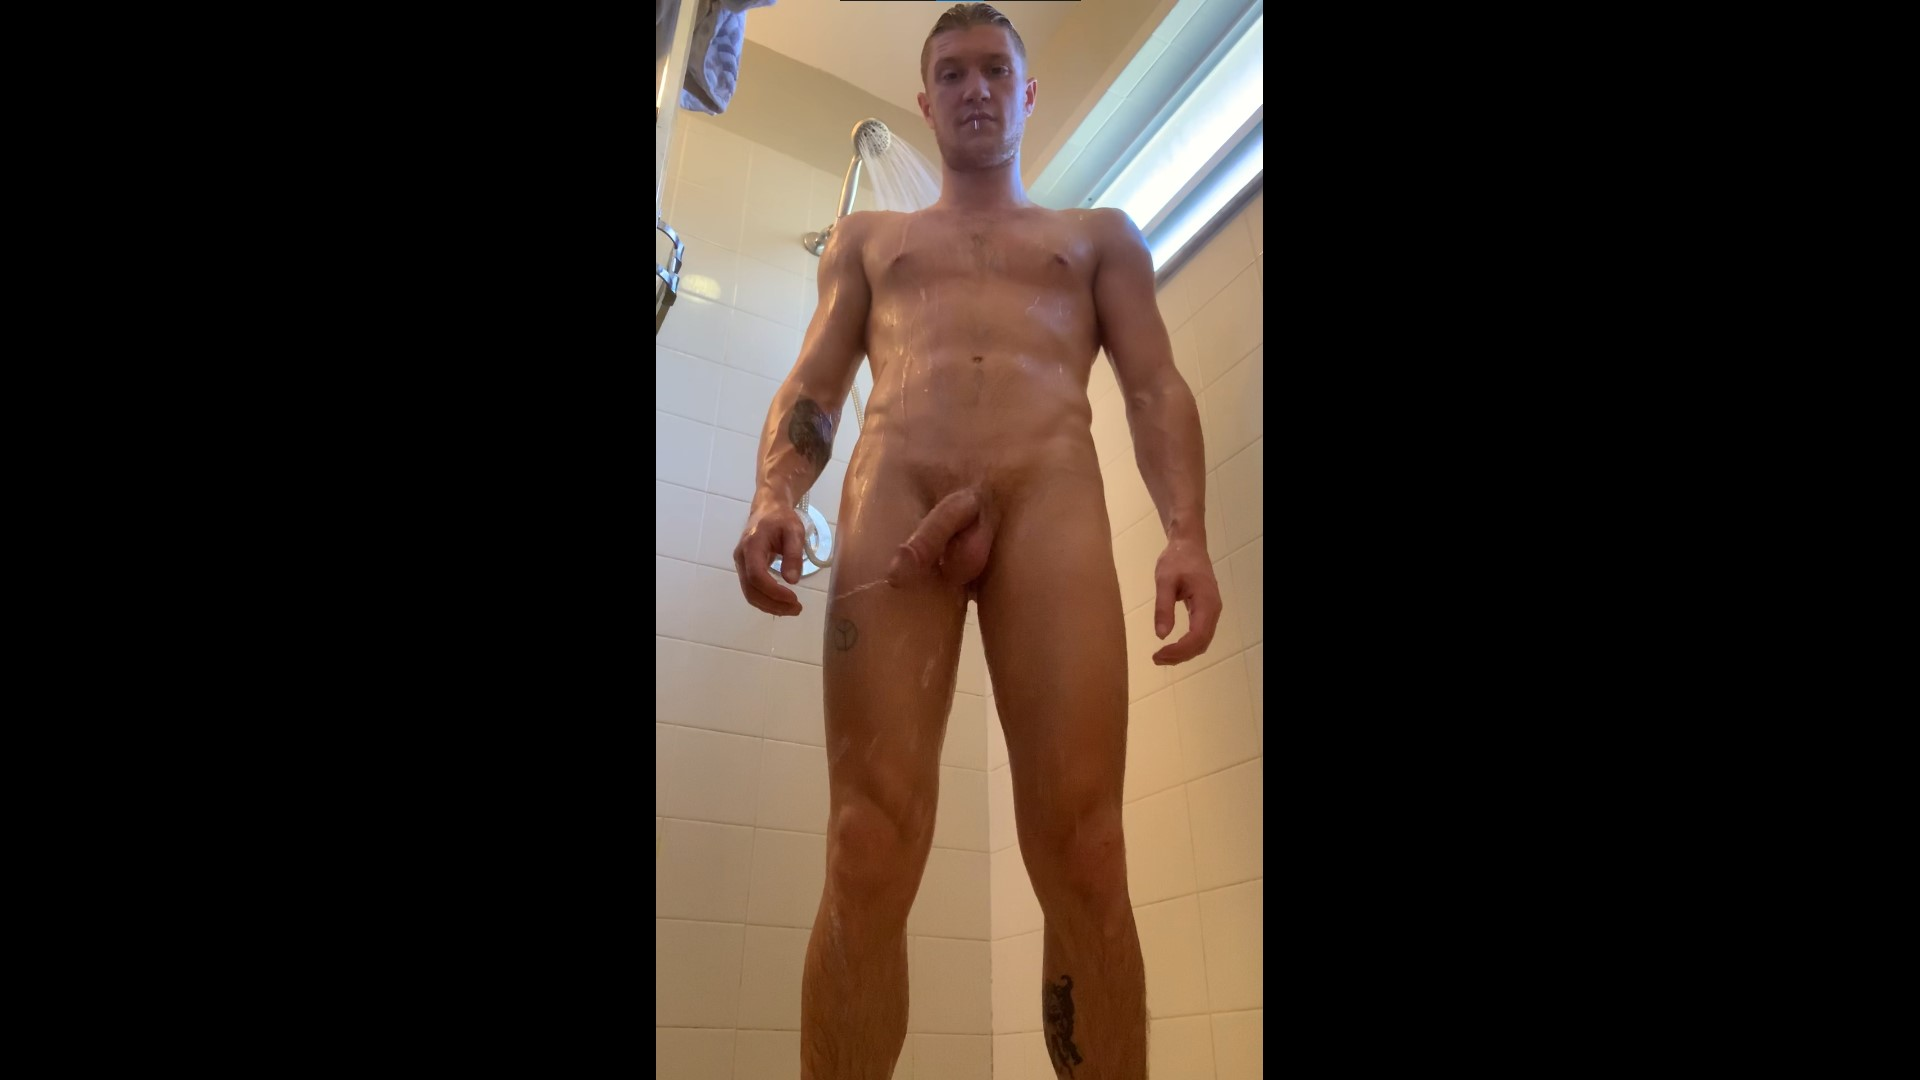 Showing off my body and cock in the shower - Oliver Flynn (TheOliverFlynn)